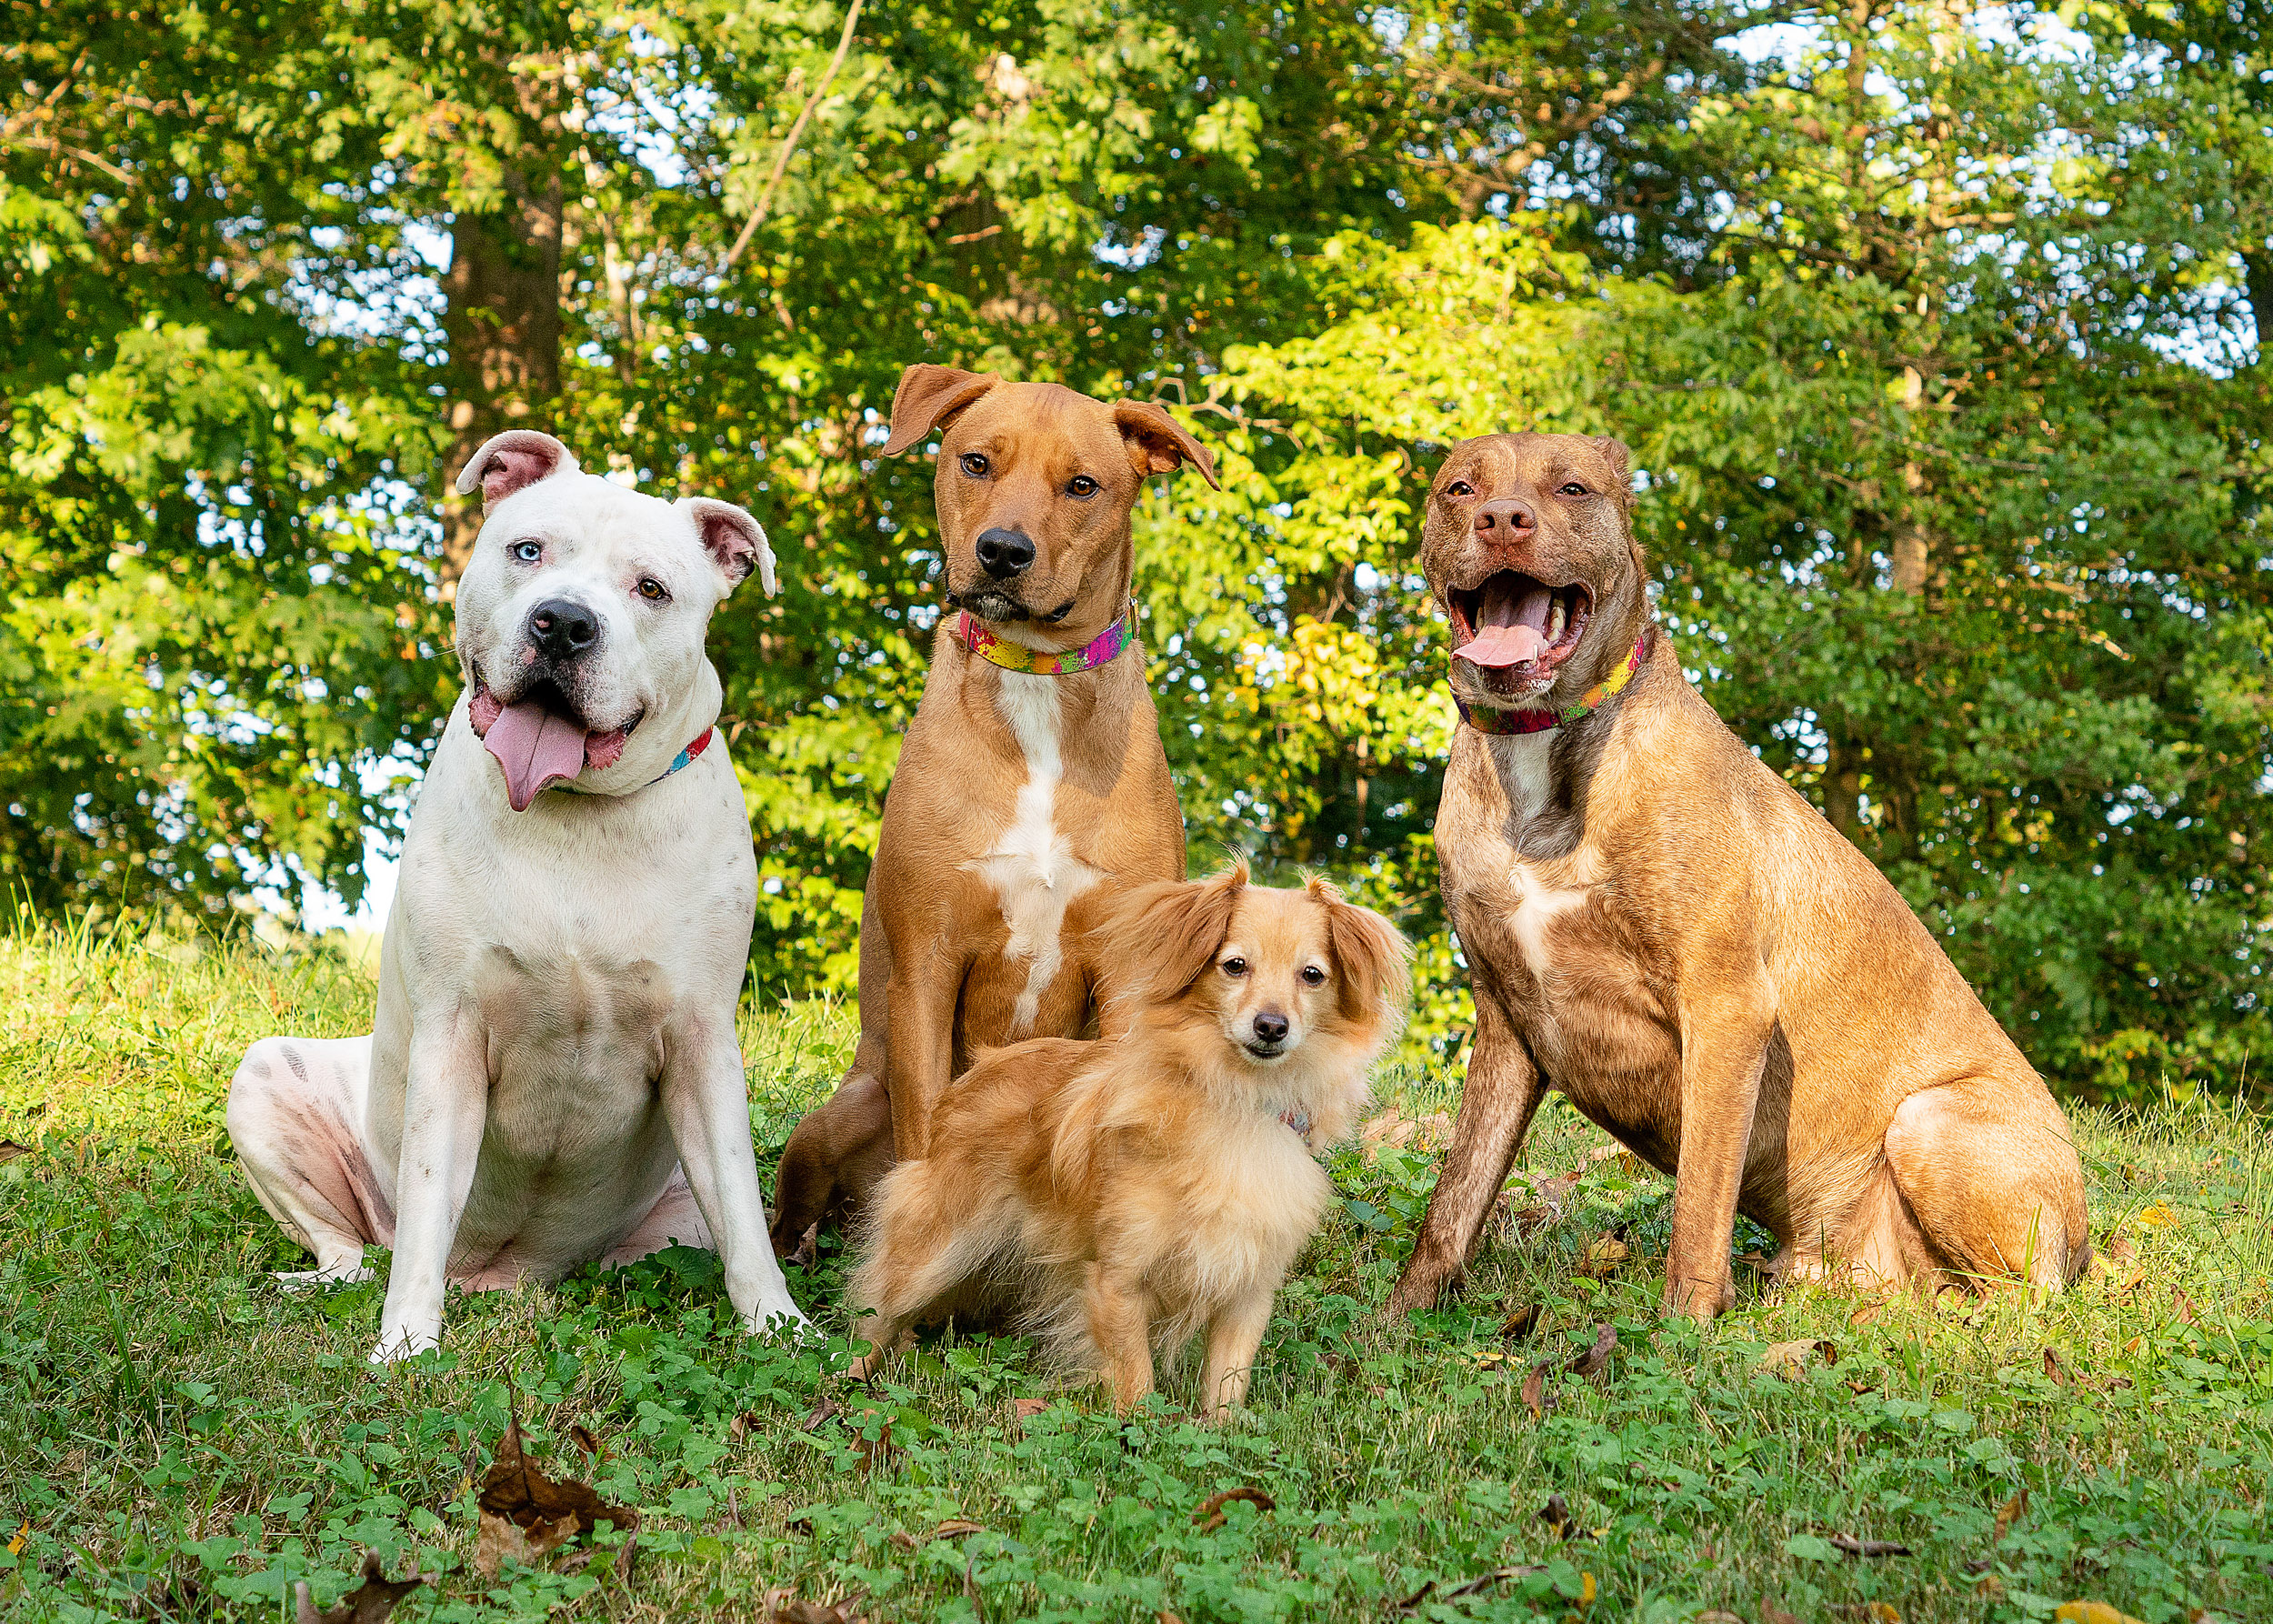 These four dogs were photographed in Rock Creek Park. They were all standing together with the help of a dog trainer and another assistant. Keep in mind the dogs did have leashes which we Photoshopped out of the image.